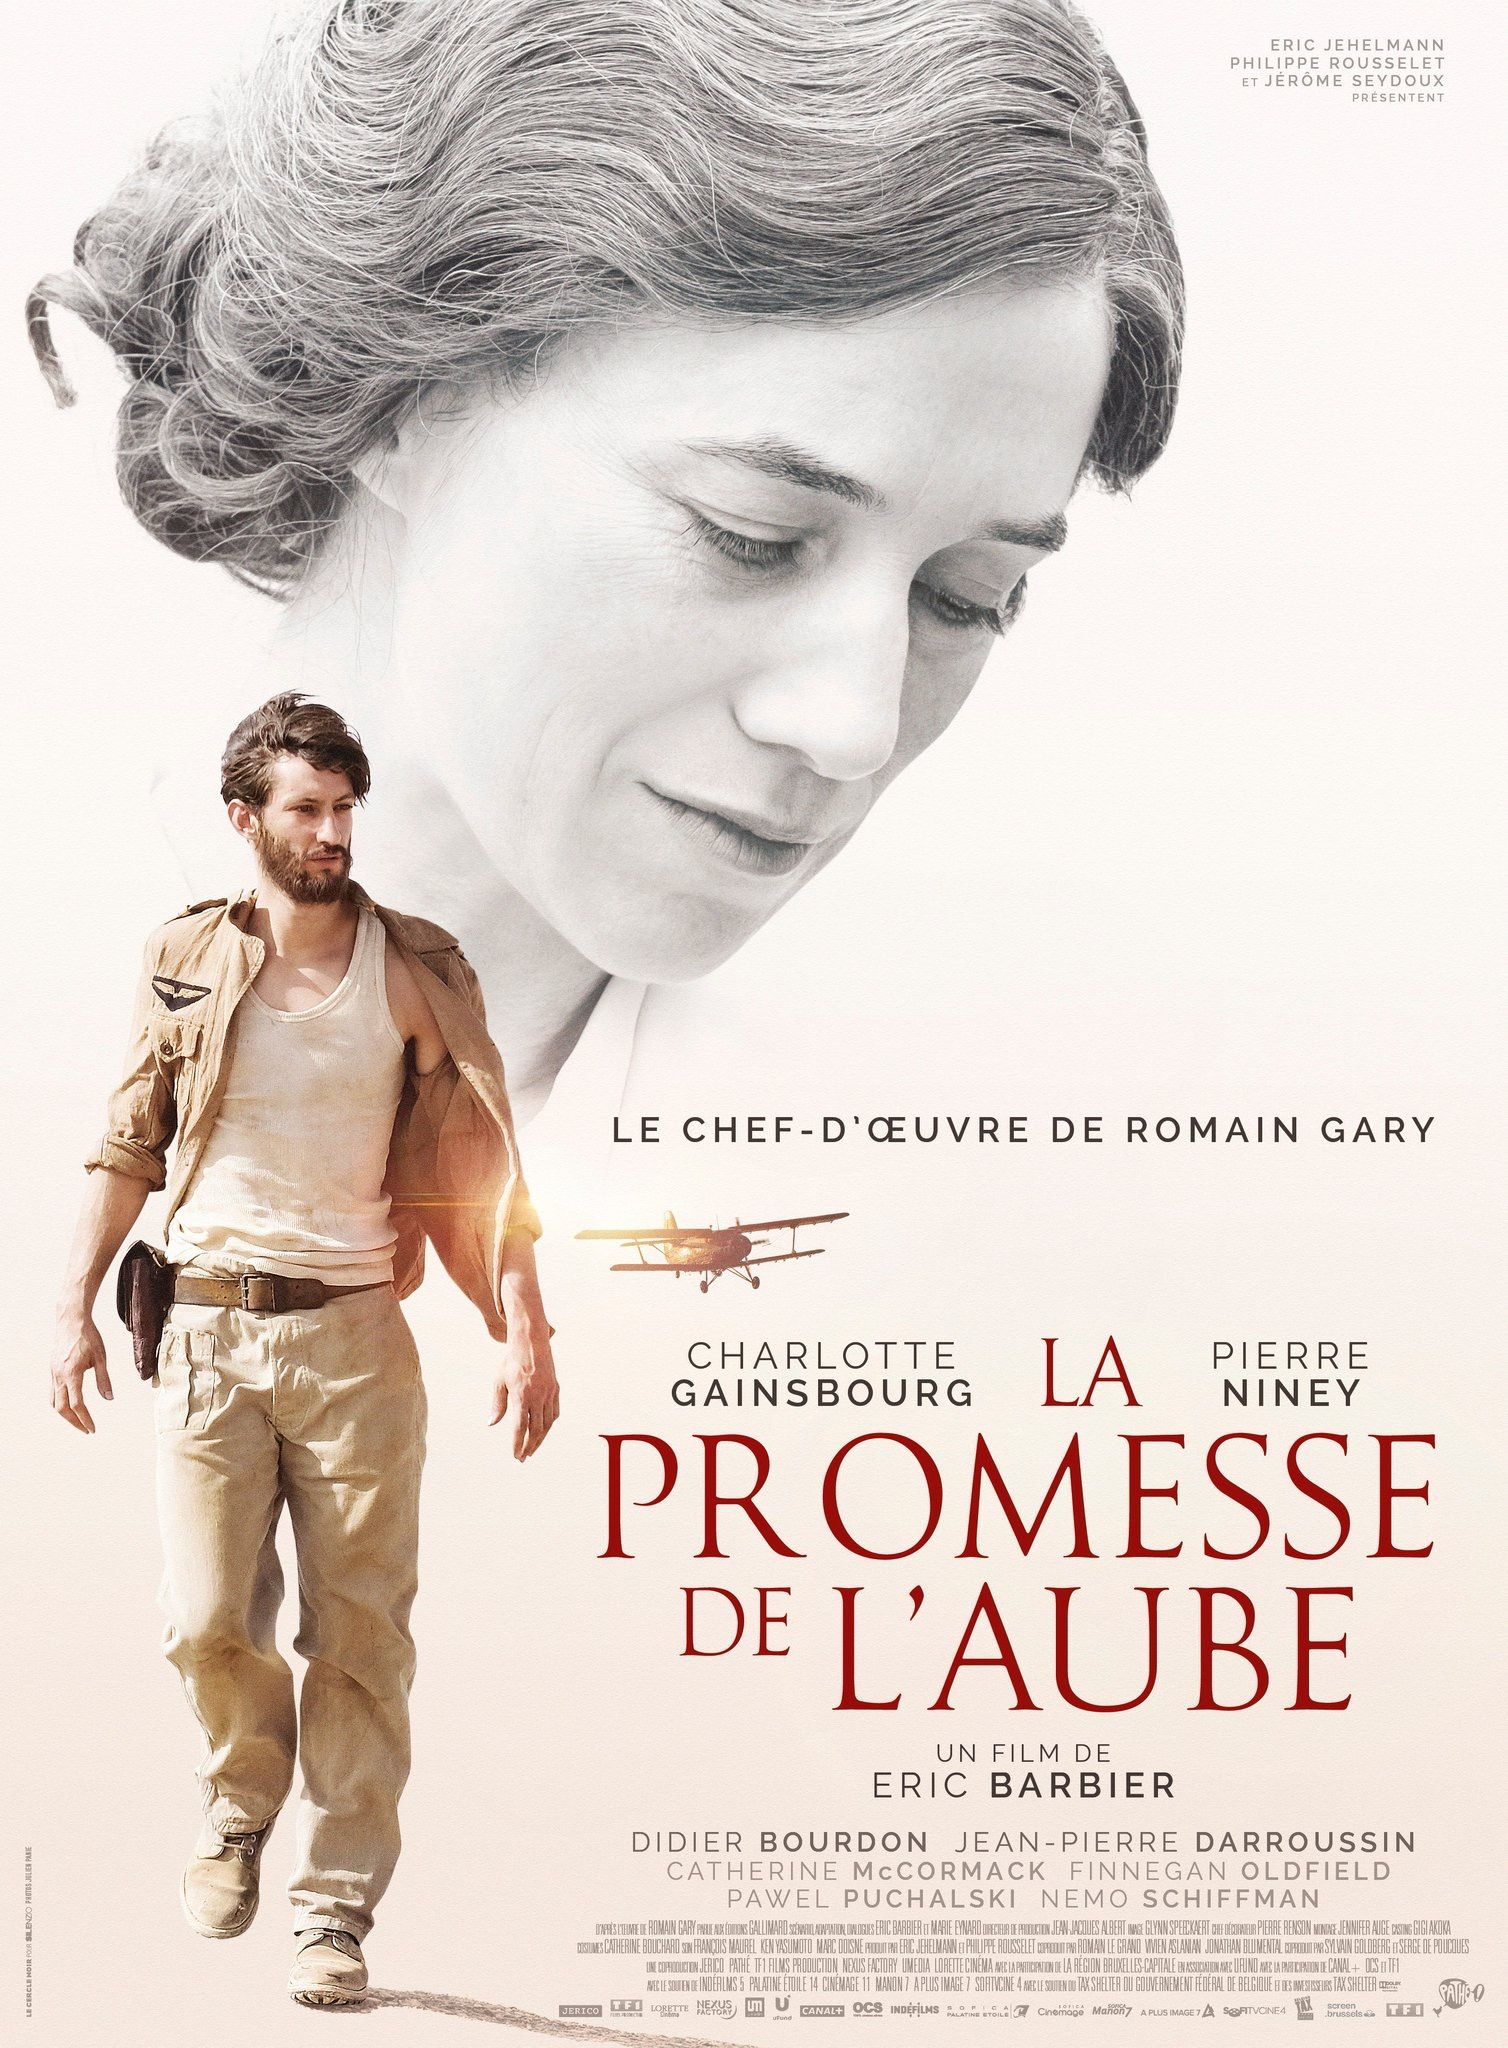 La Promesse de l'aube - Film (2017) - SensCritique